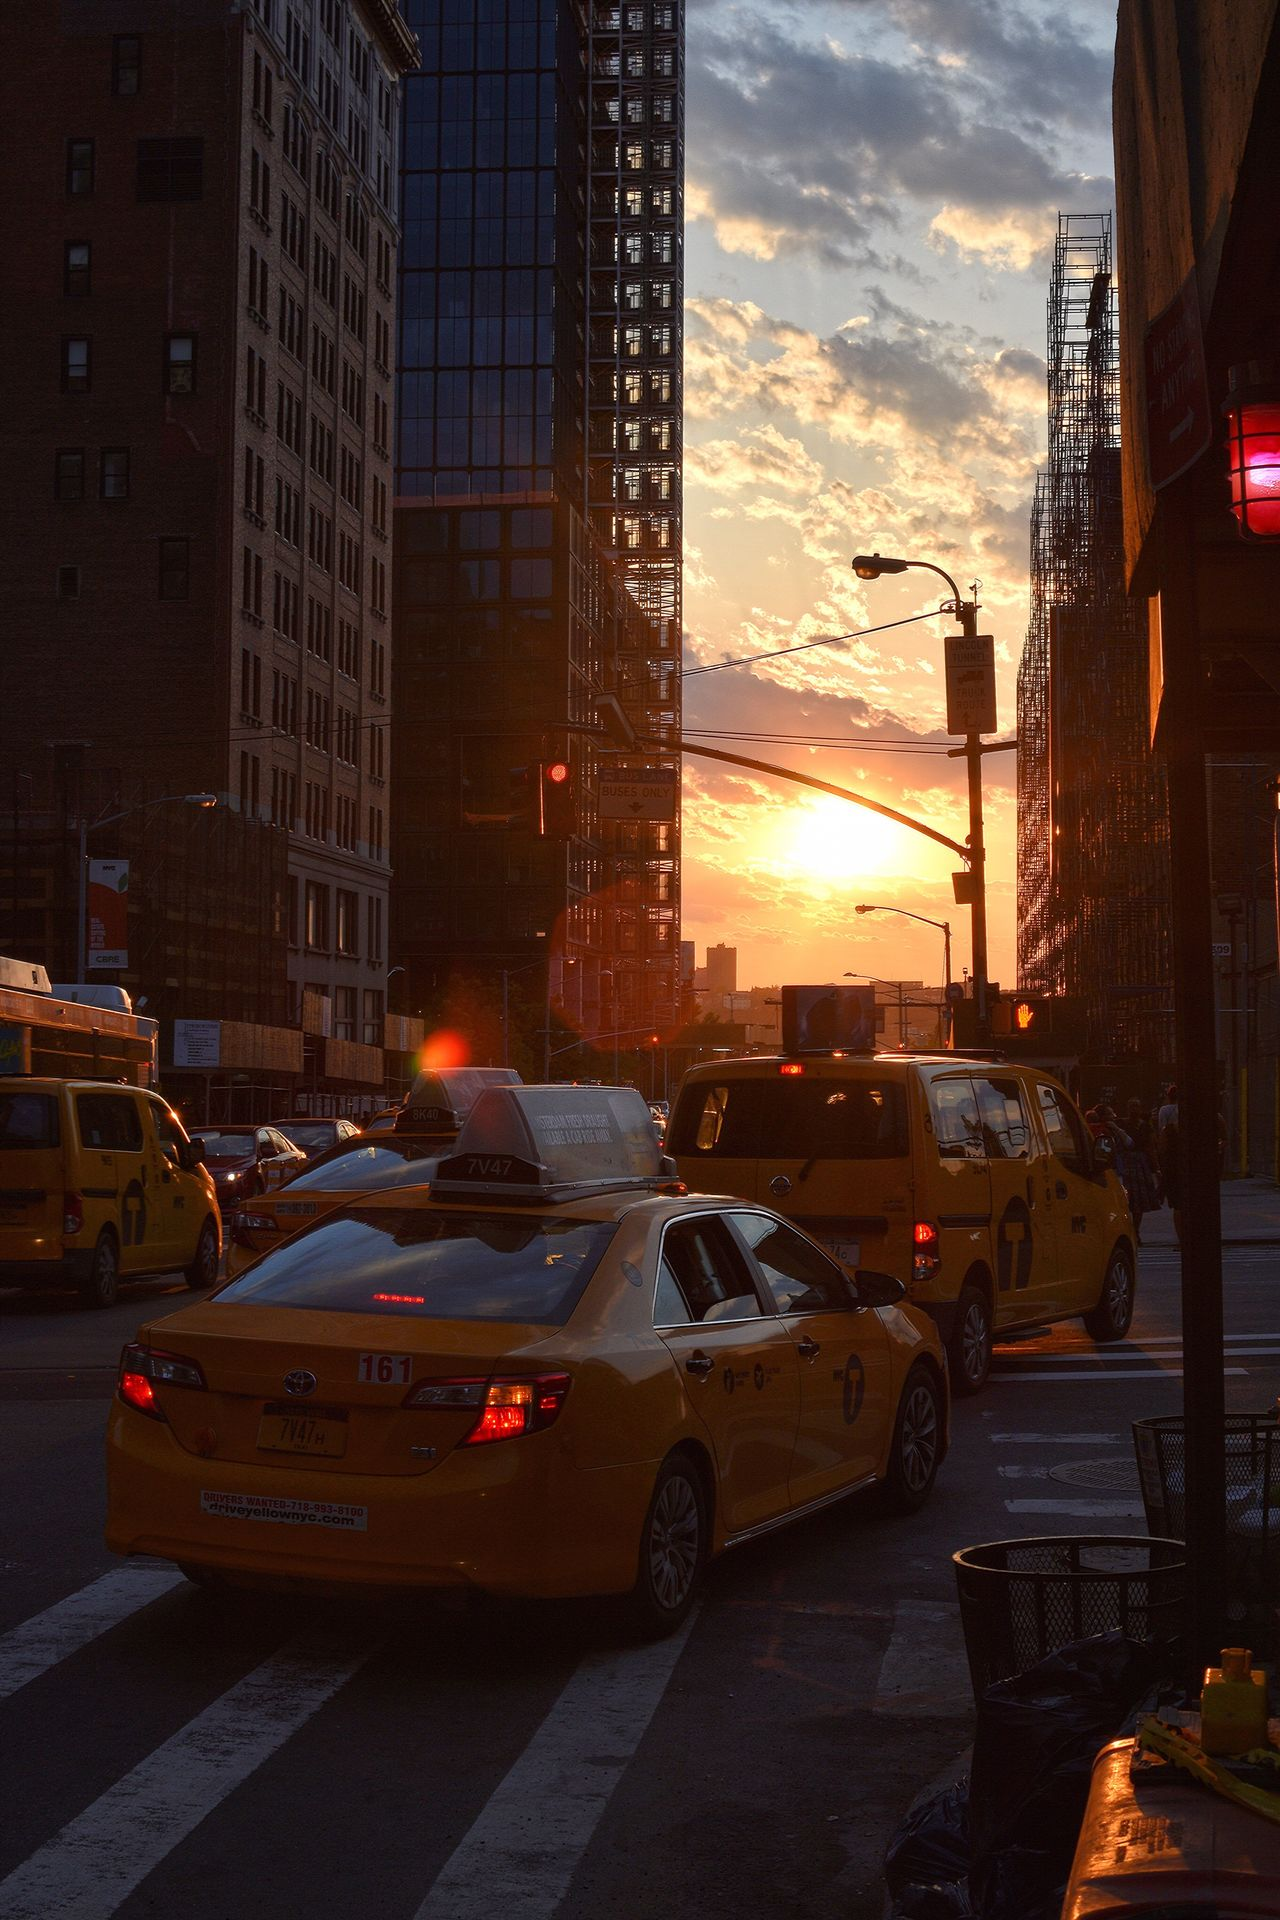 Car Sunset Architecture Building Exterior City Built Structure Transportation Land Vehicle Sky Outdoors Skyscraper No People Cityscape Day Silhouette_collection Sunset Silhouettes NYC Photography Silhouette Silhouettes NYC Street Photography NYC Street Yellow Cabs NYC Mode Of Transport Transportation